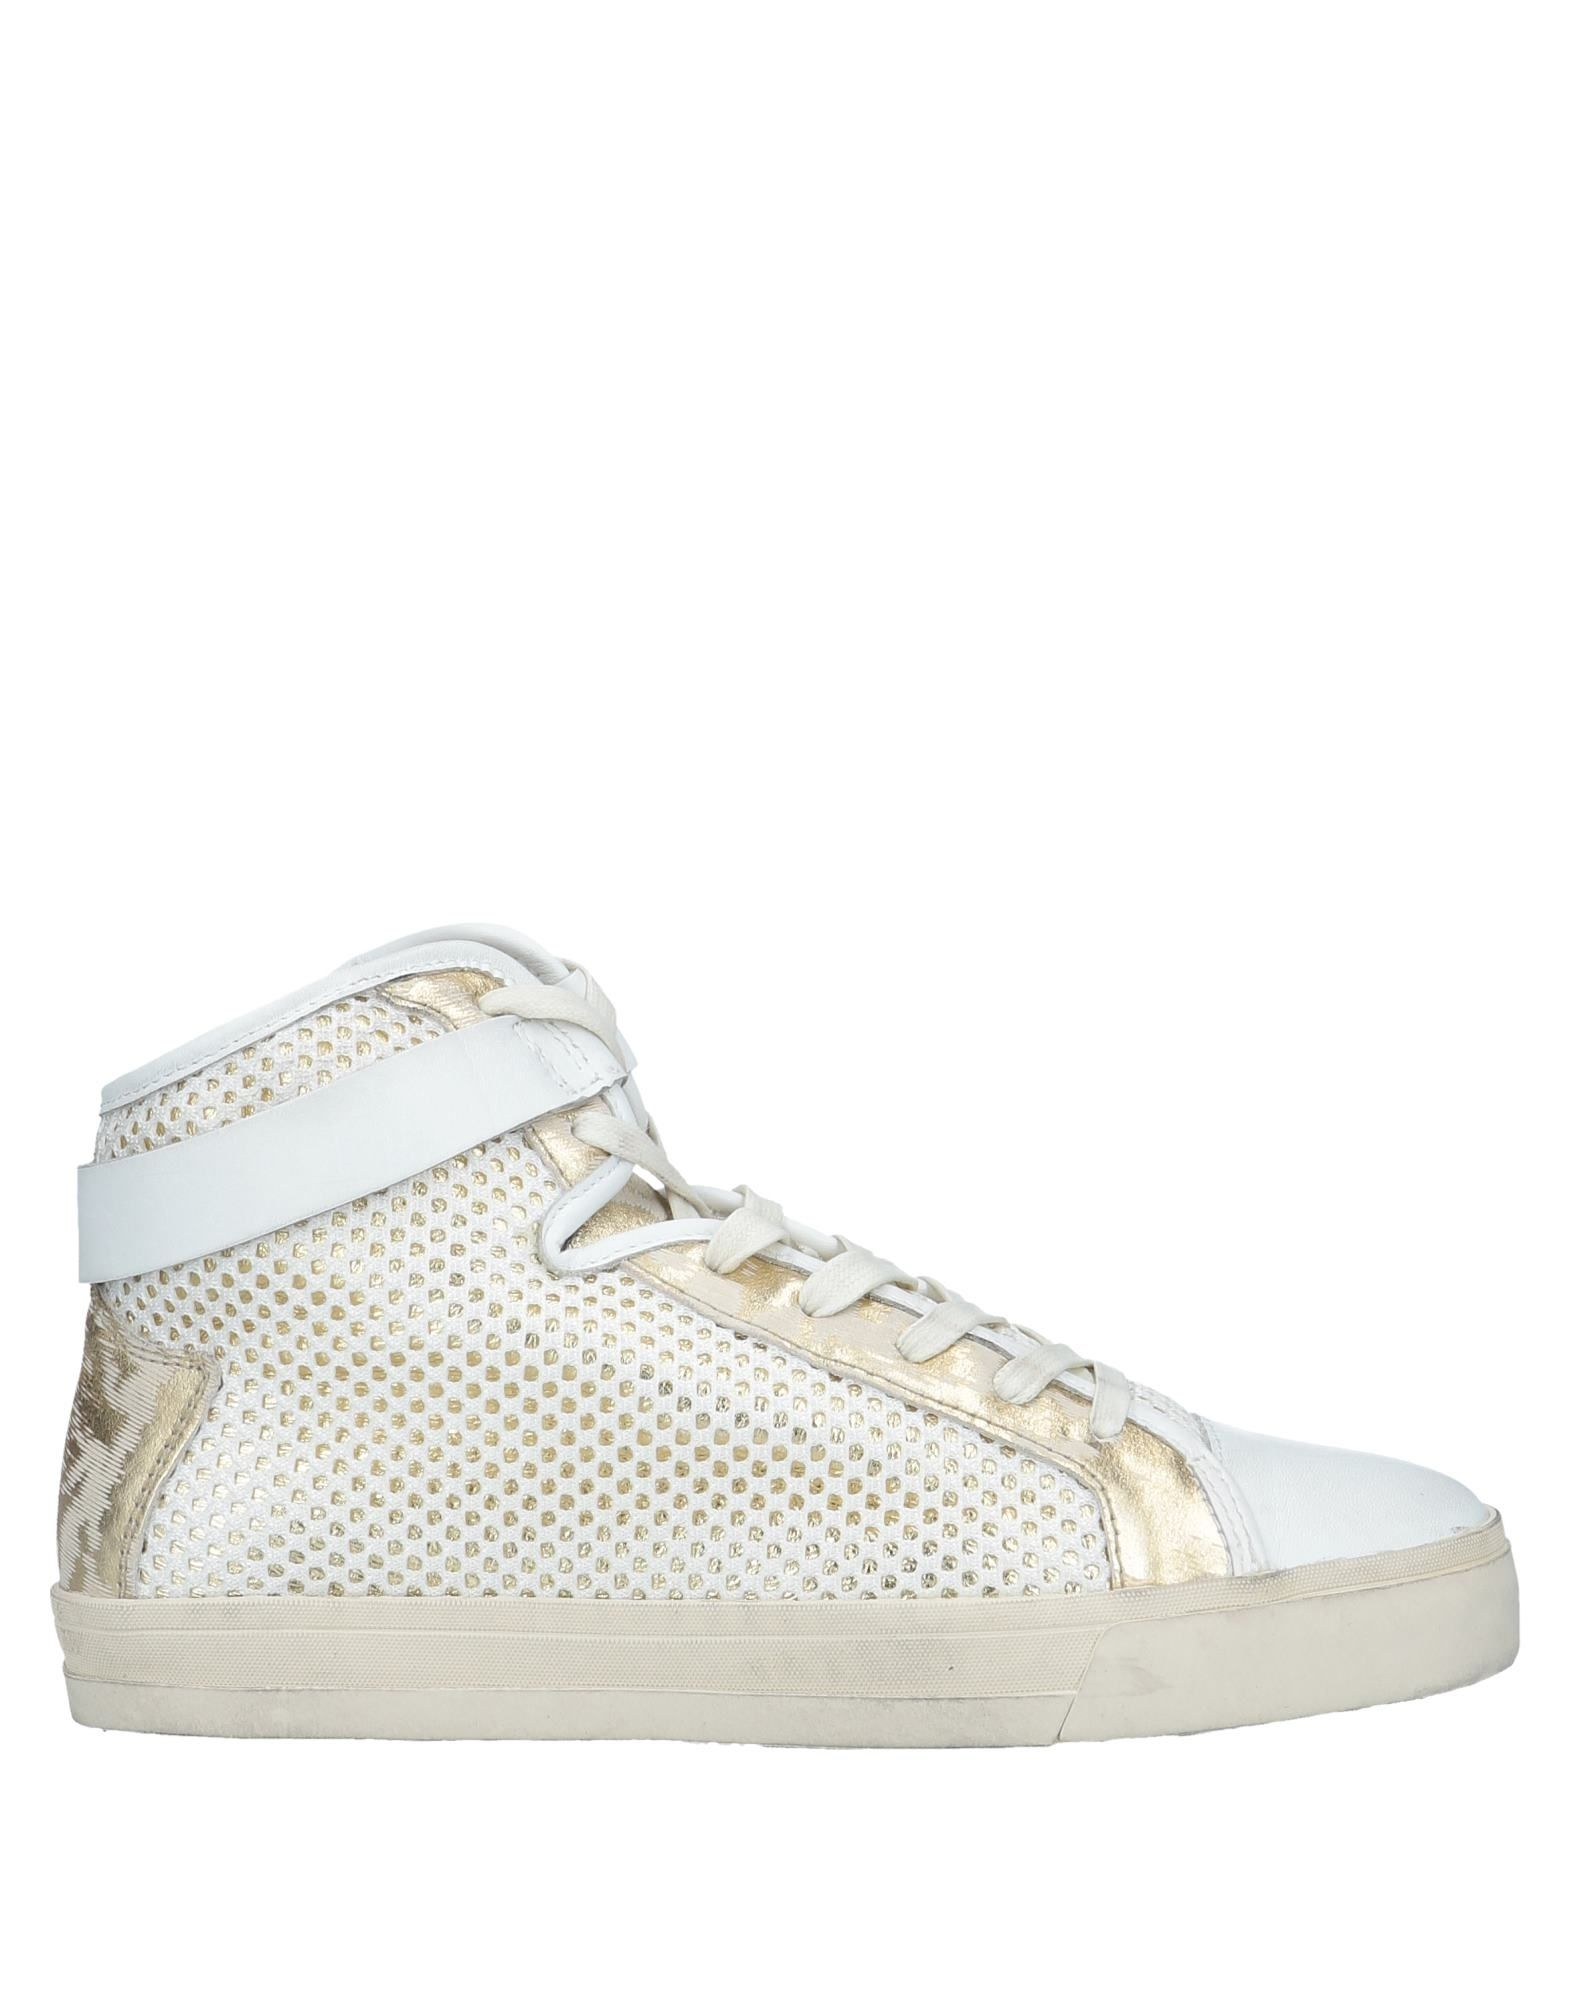 Crime London Sneakers - Women on Crime London Sneakers online on Women  Canada - 11559710EO 0e3e80